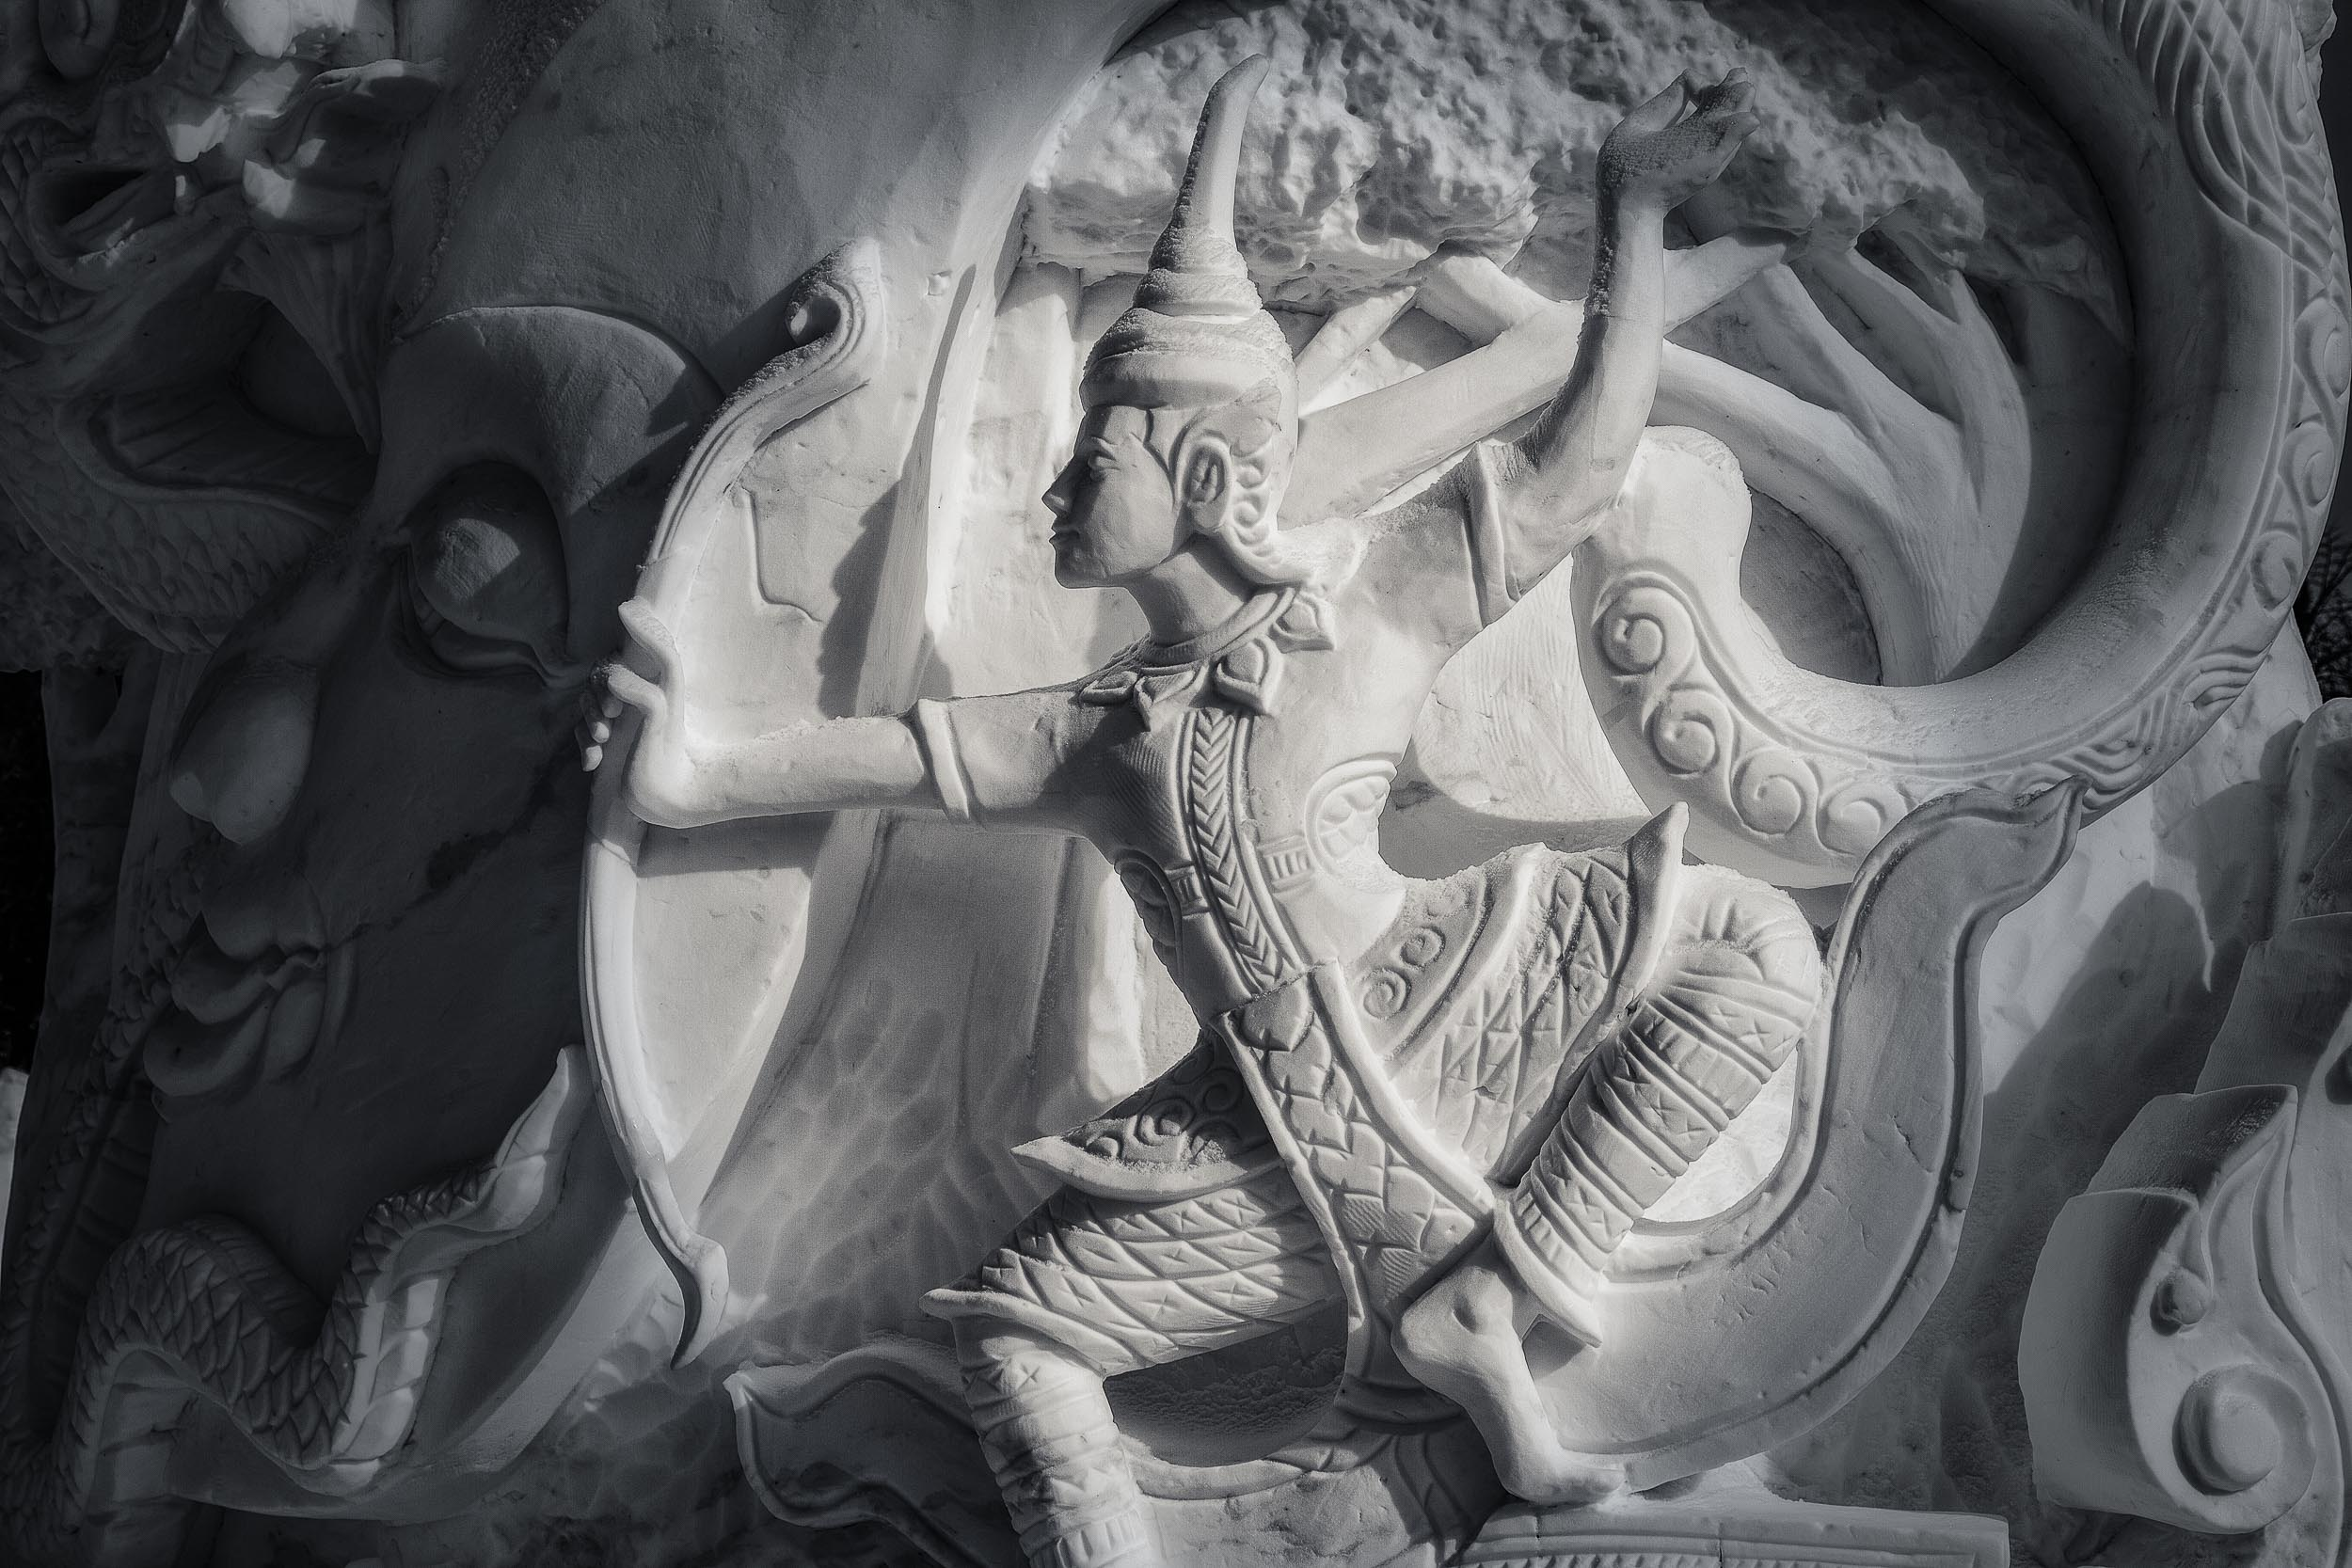 A    Thai warrior   , carved in snow at    Snow World    in    Harbin, China   .